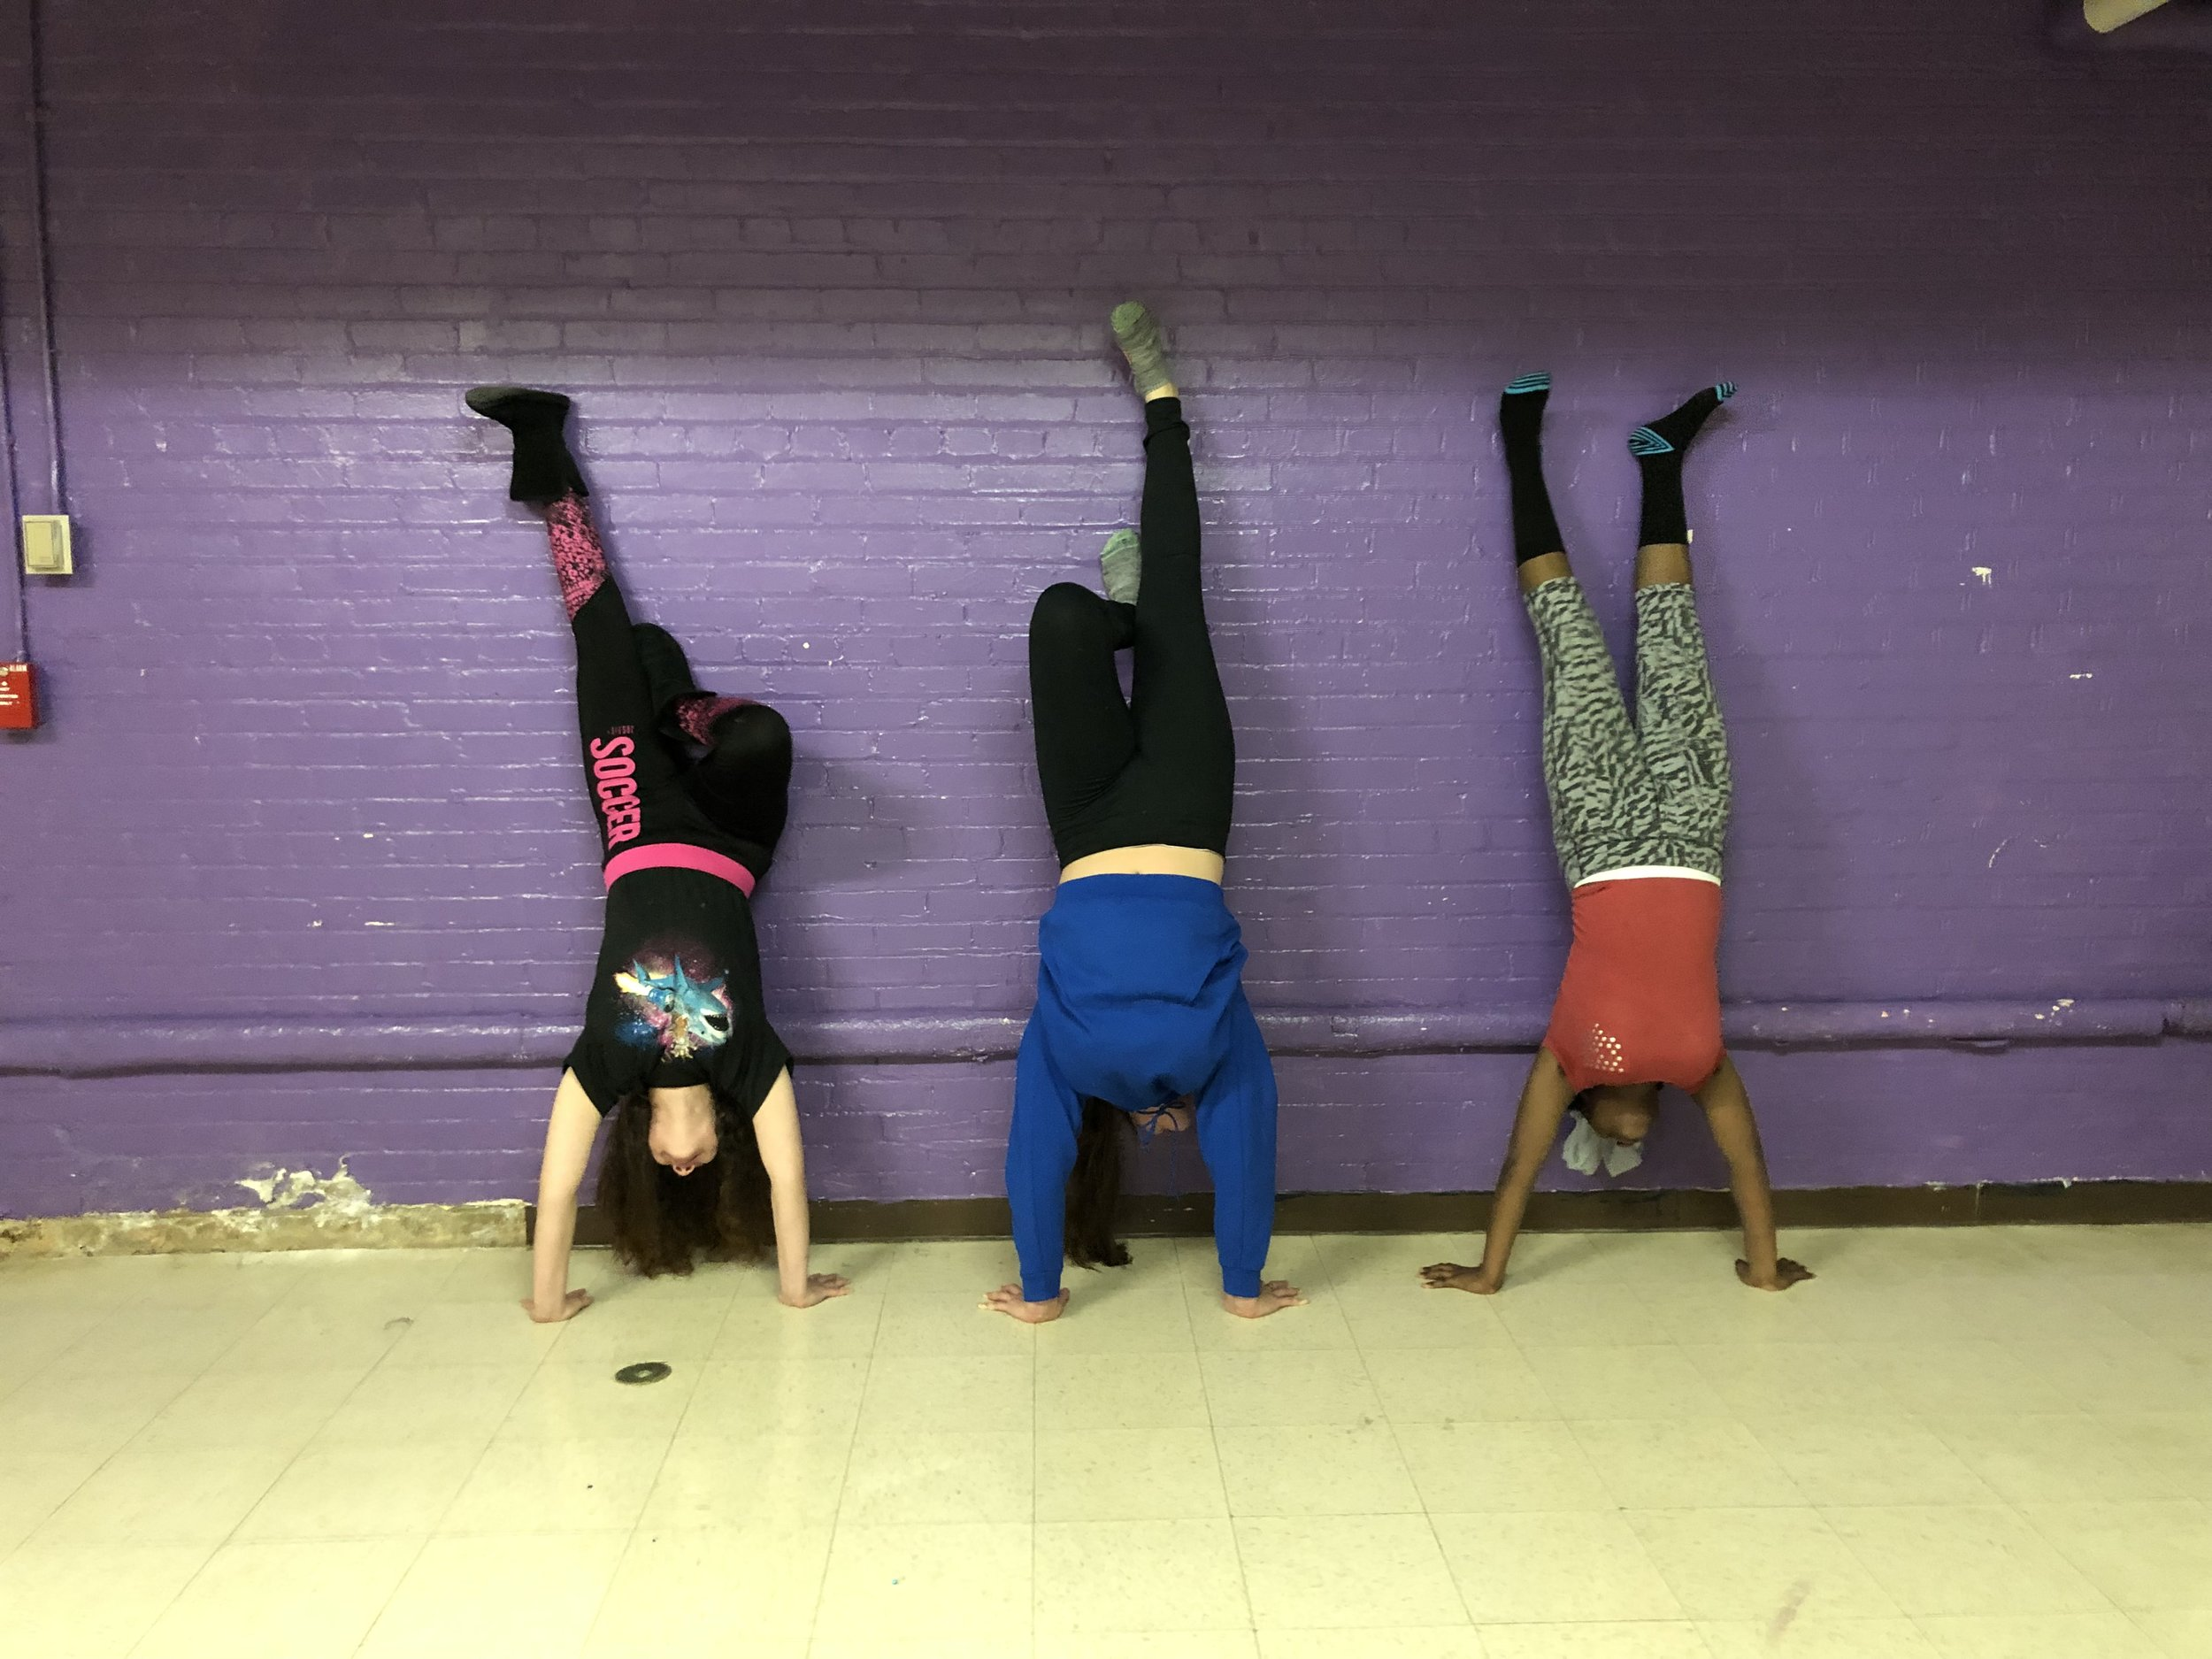 """Learning to trust oneself and others… - Vista Maria is a residential foster care facility for traumatized at girls located in Dearborn Heights. I have been teaching yoga to the girls since July 2018.During our first class, I asked the girls to close their eyes. One young lady asked, """"Will I get punched in the face?"""" Can you imagine the traumatic experiences that child has had to allow her to utter those words? Since the program has begun, the girls' self-esteem, respect for one another and communication has noticeably improved.-Julie August, Instructor"""